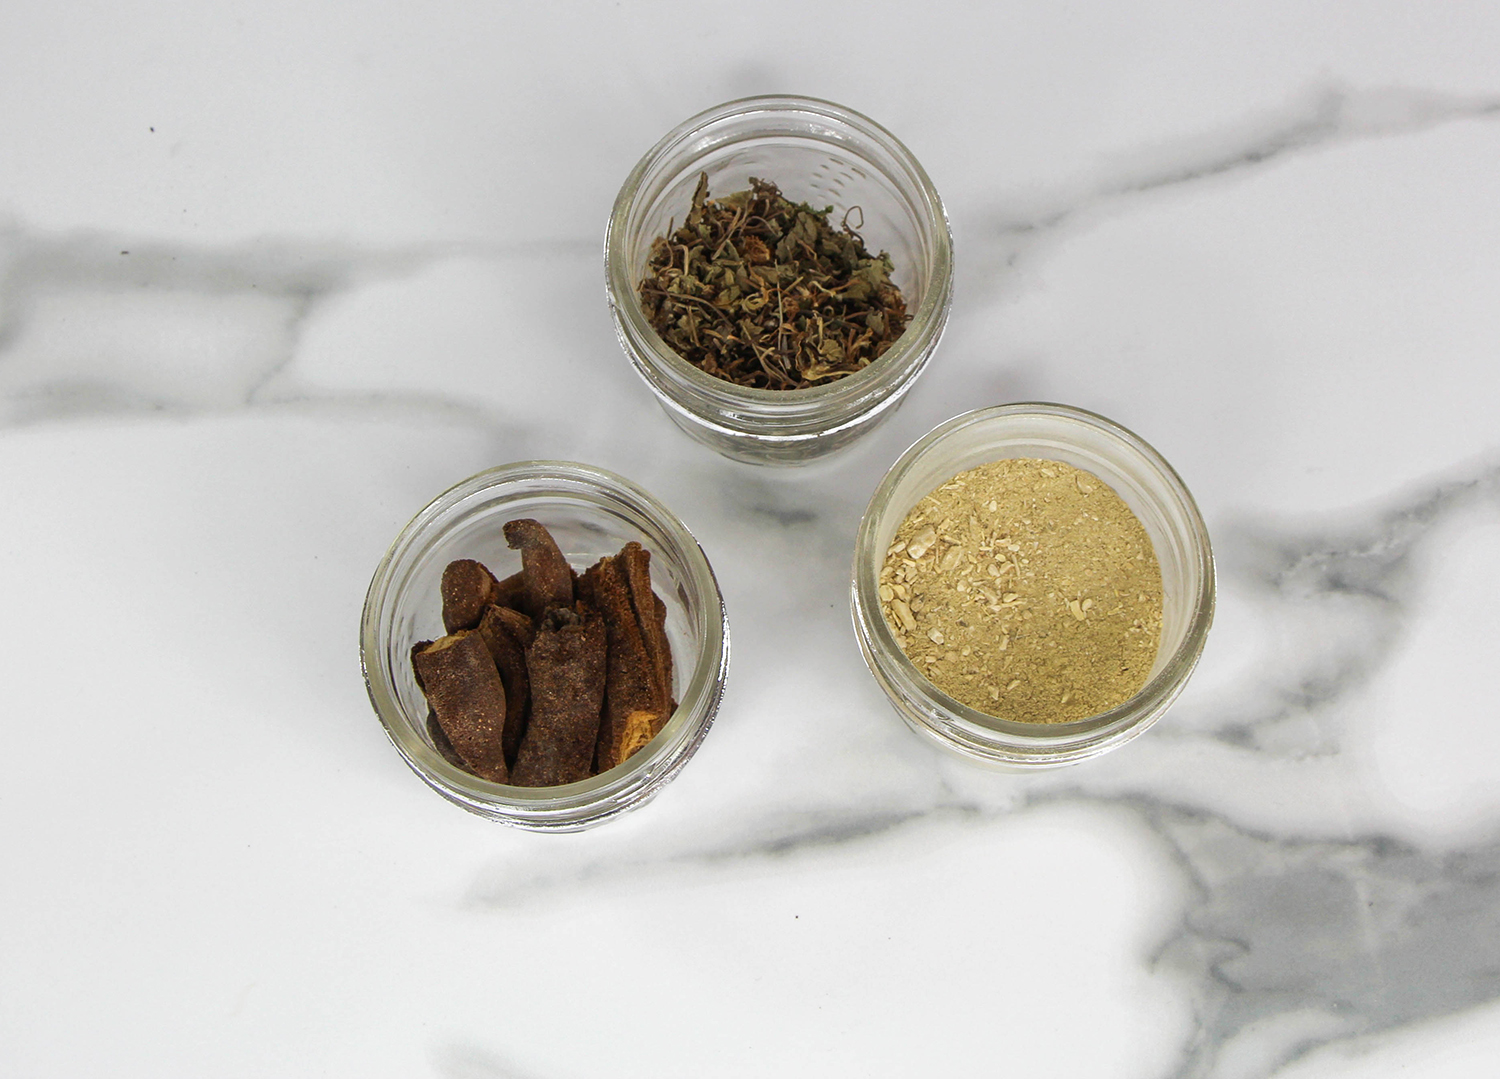 Dried Breadfruit Flowers, Gotu Kola and Soapwart - all beneficial ingredients found in the Altilis Beauty Product Line. See  here  for some more of our ingredients and their benefits.